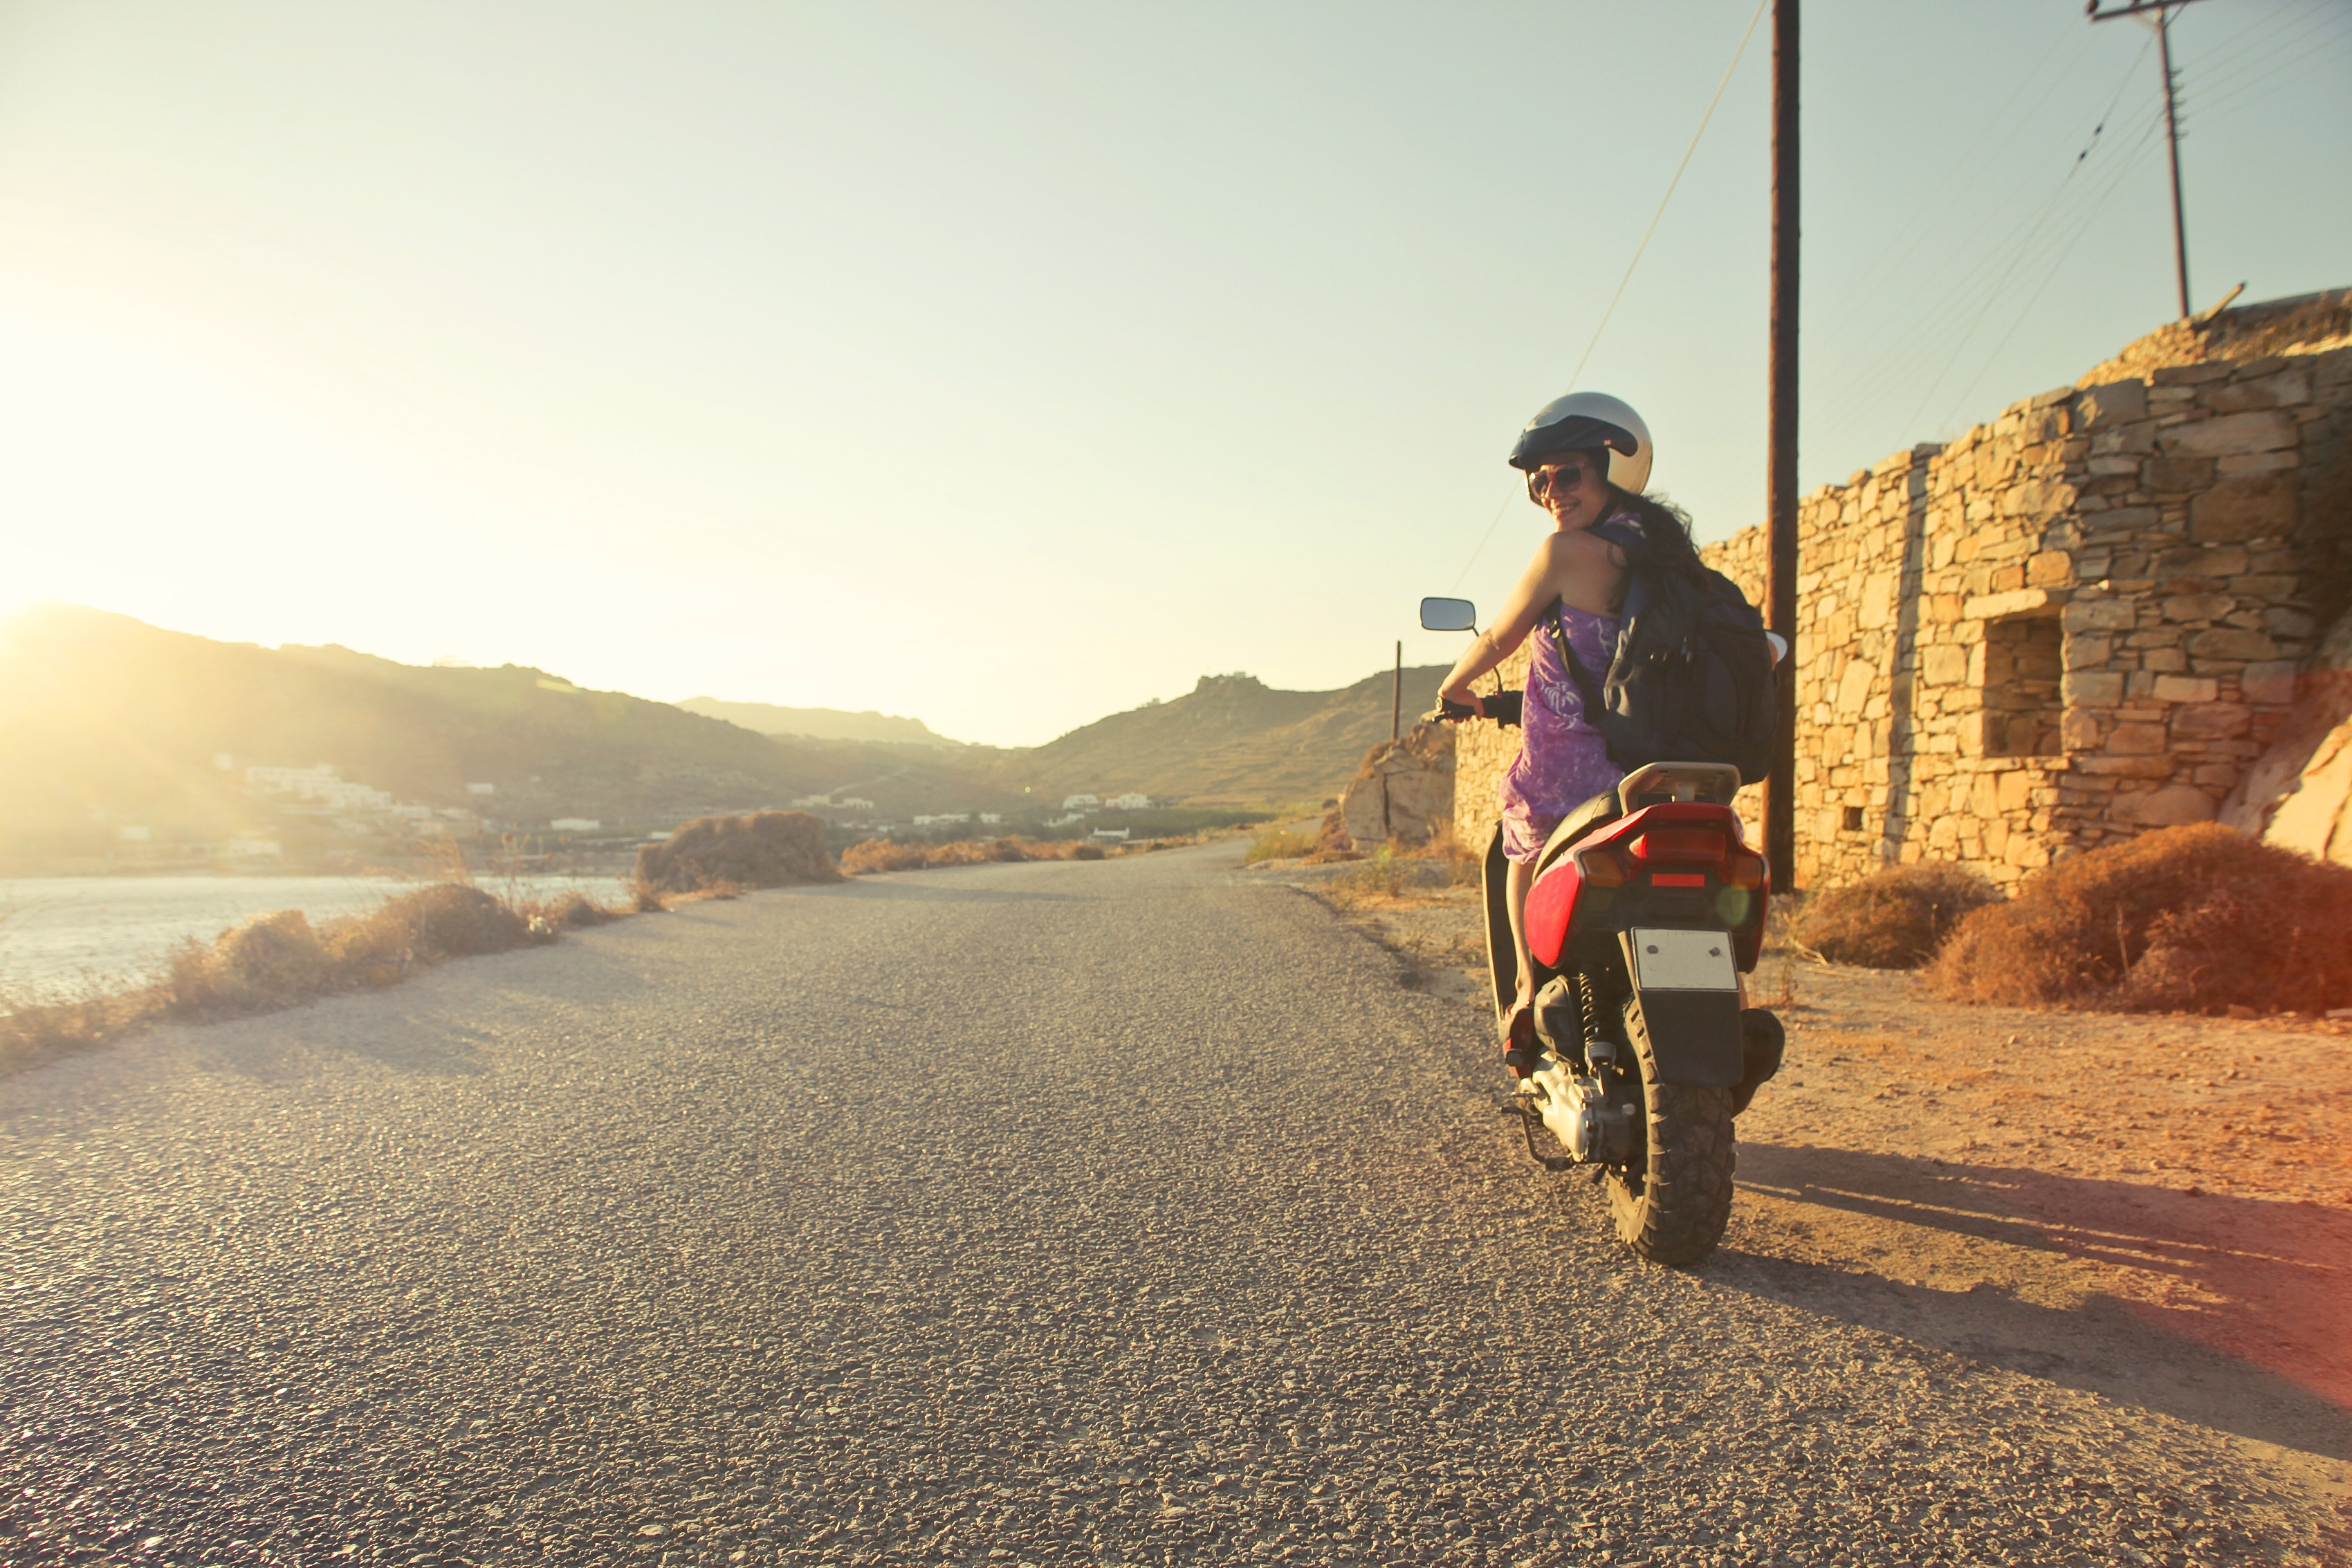 Woman riding motor scooter travelling on asphalt road during sunrise photo